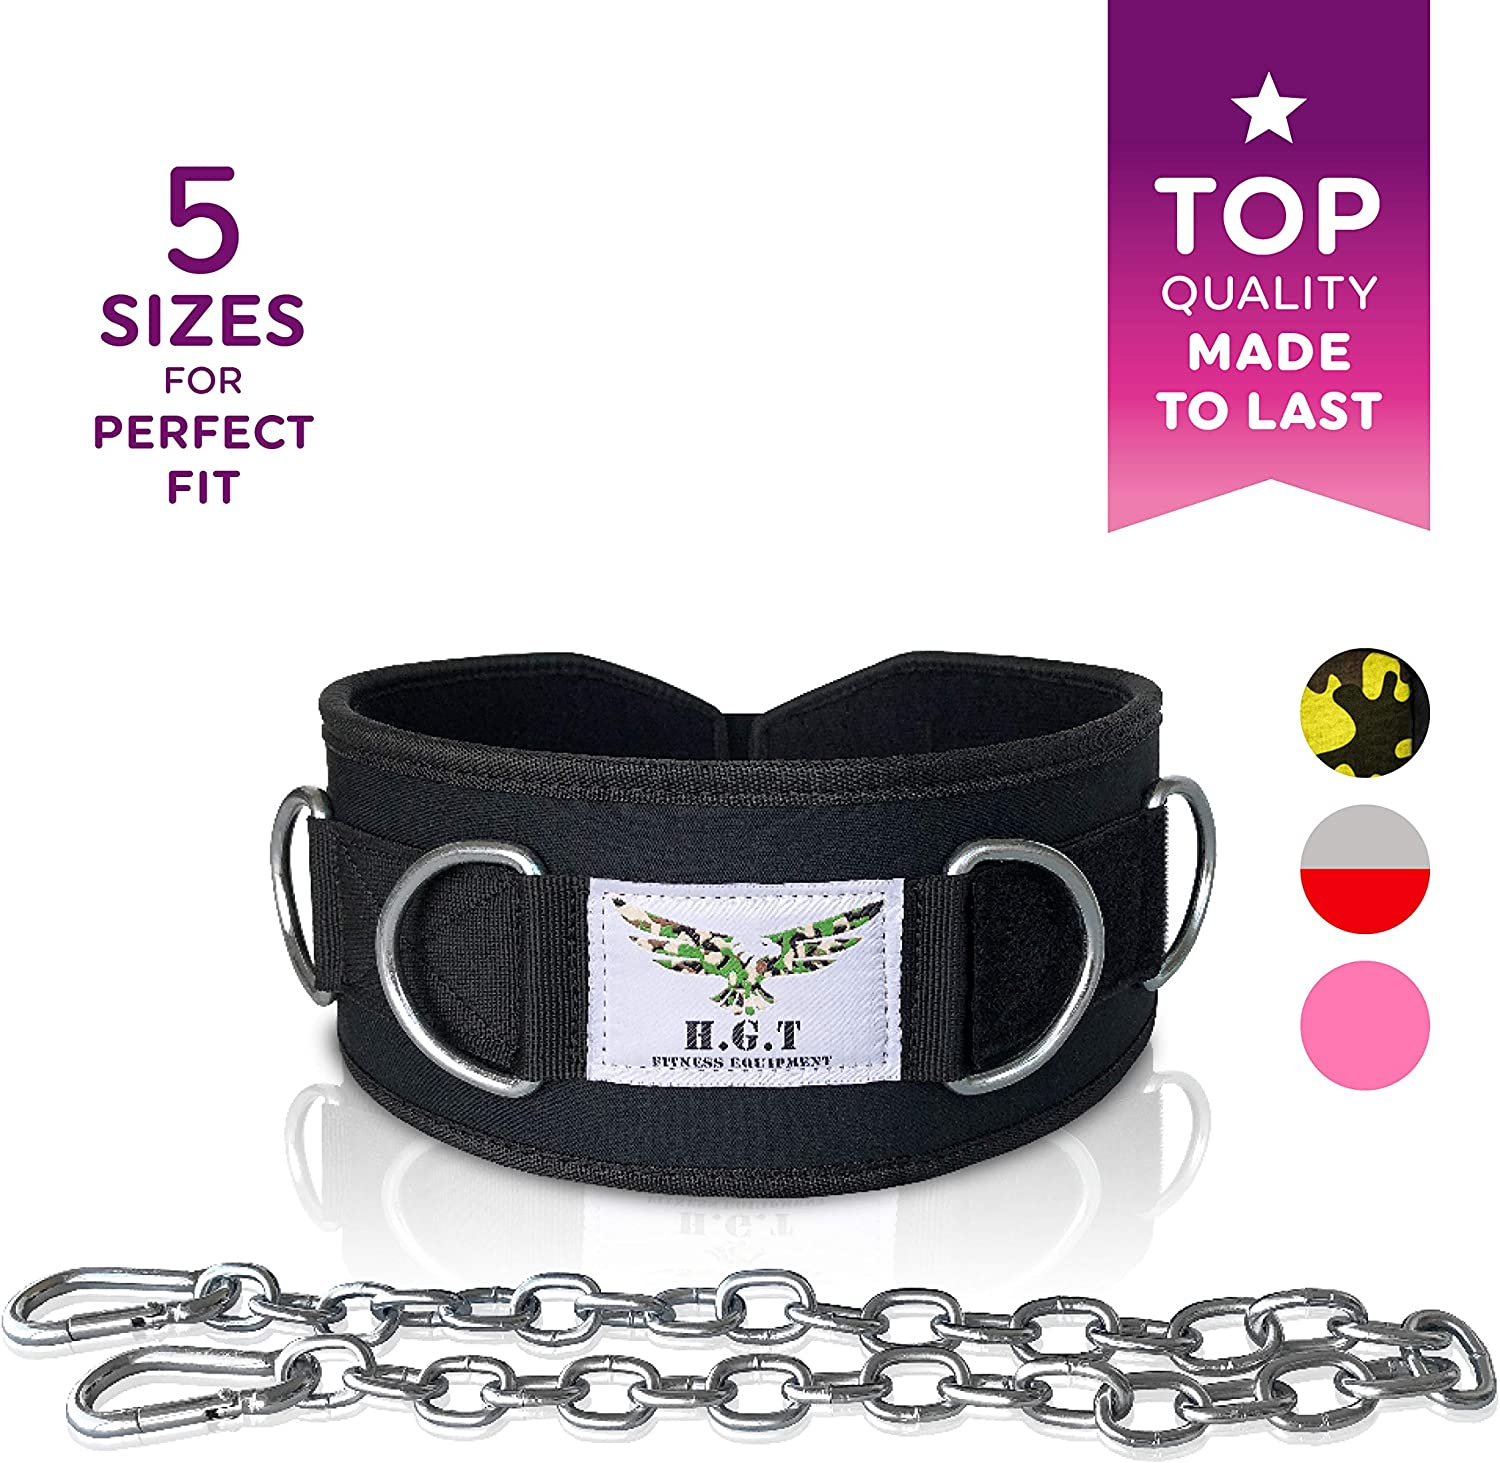 Premium Weight Lifting Belts by H.G.T – Hip Squat Dip Belt, Weightlifting, Mobility Belt – 7 D-Rings, Chain, 5 Sizes for Men, Women – Cable Machine, Resistance Bands Attachment